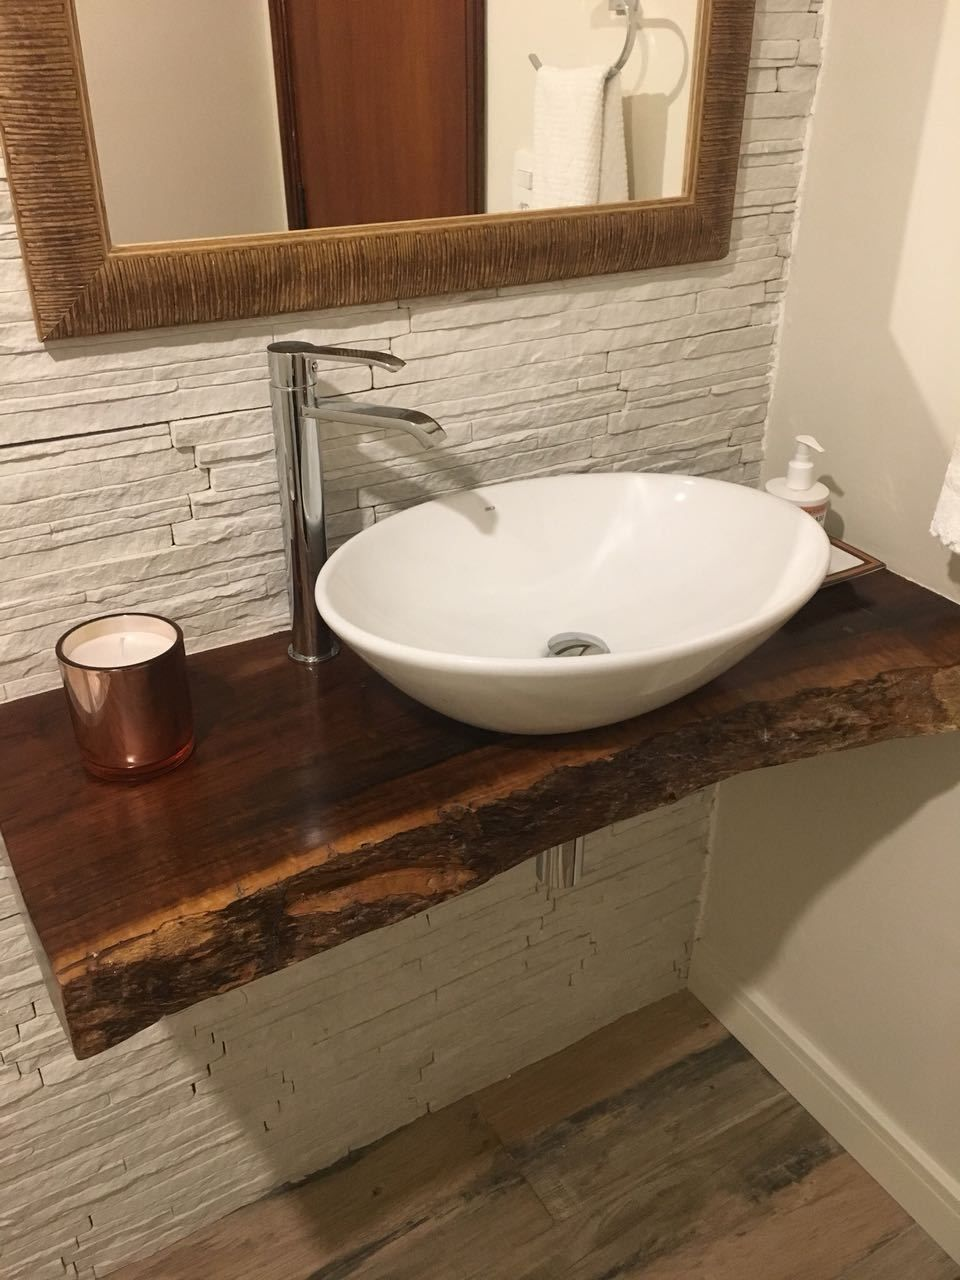 Bathroom Remodel Wainscotting Is Totally Important For Your Home